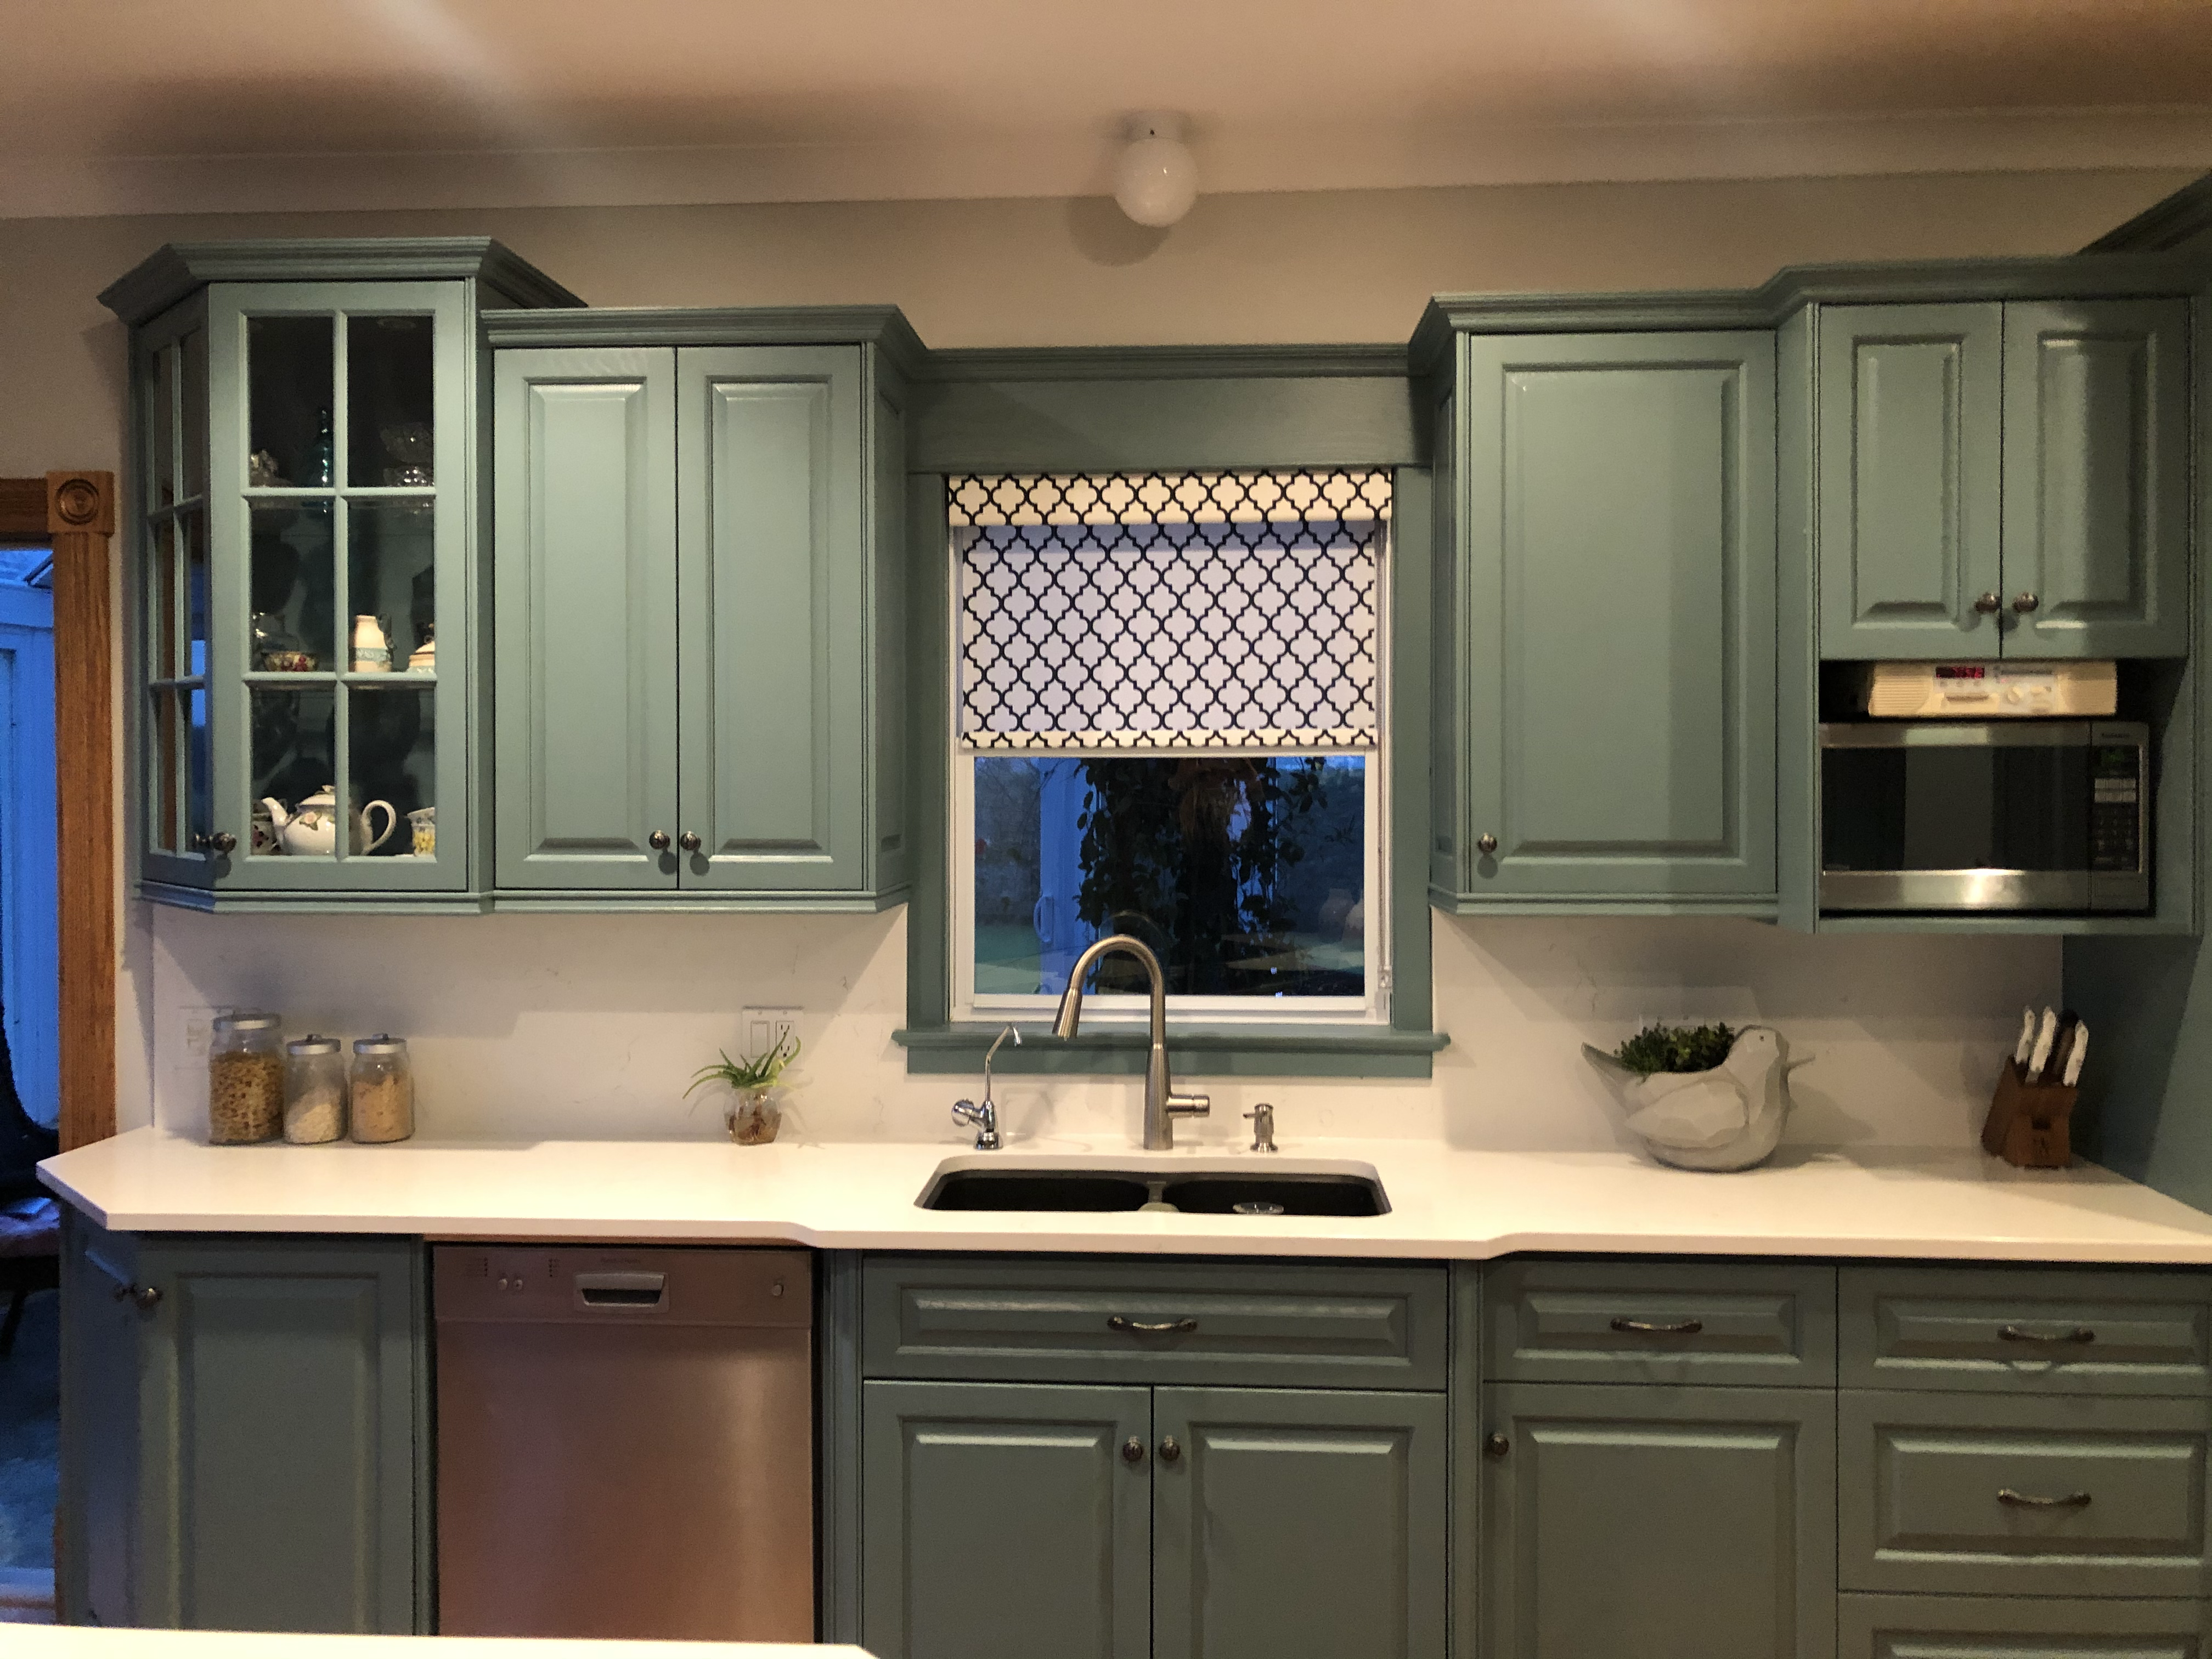 up close look at kitchen sink with overhead window